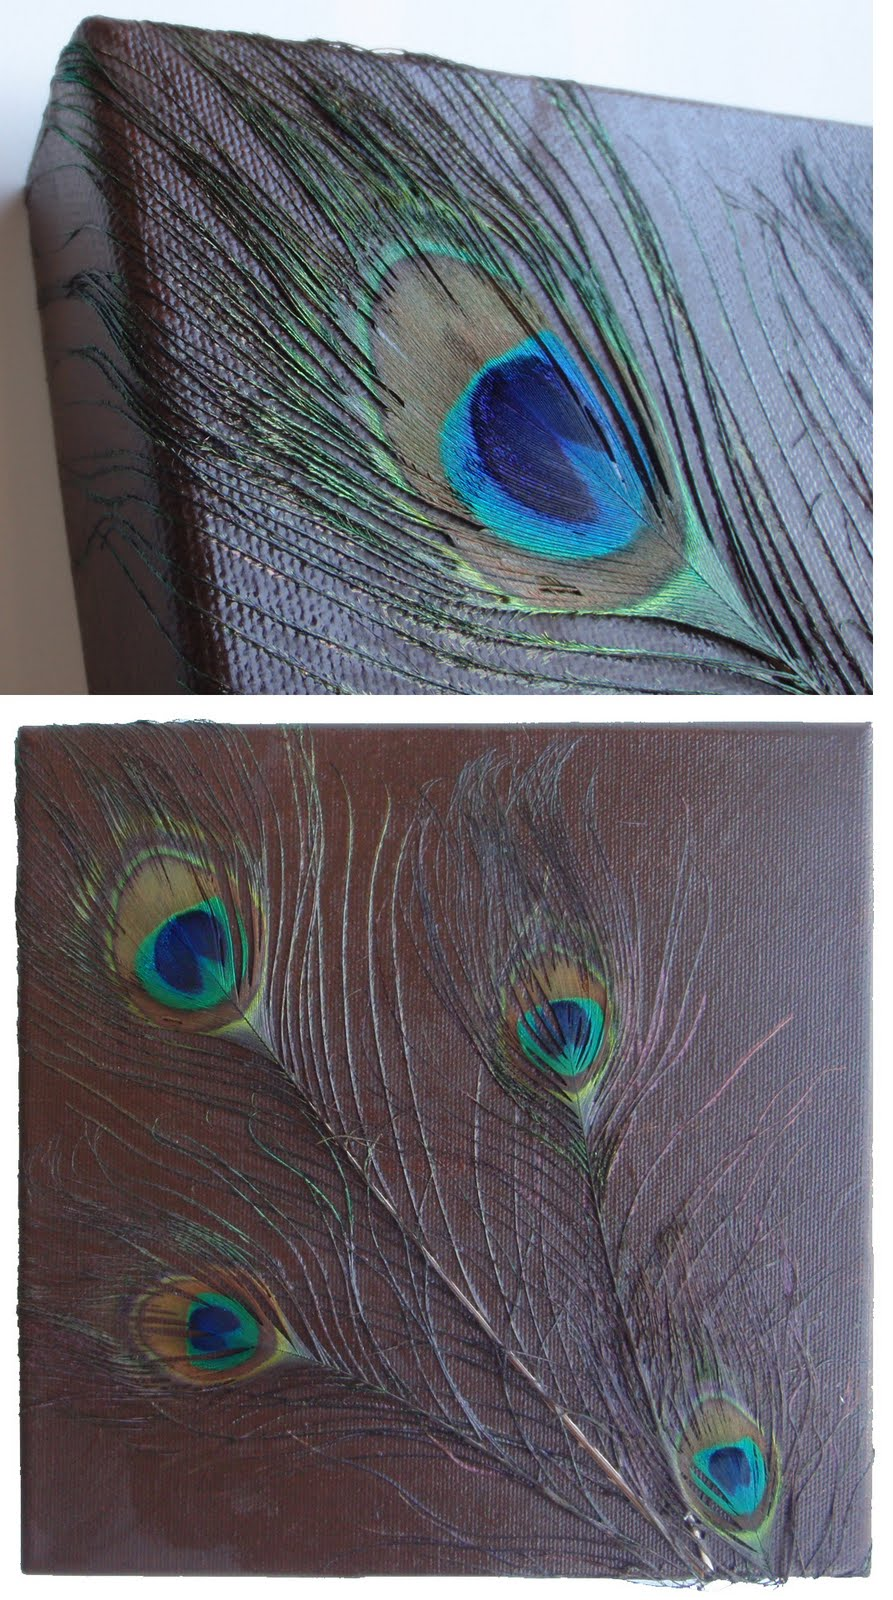 Peacock feather paintings - photo#30